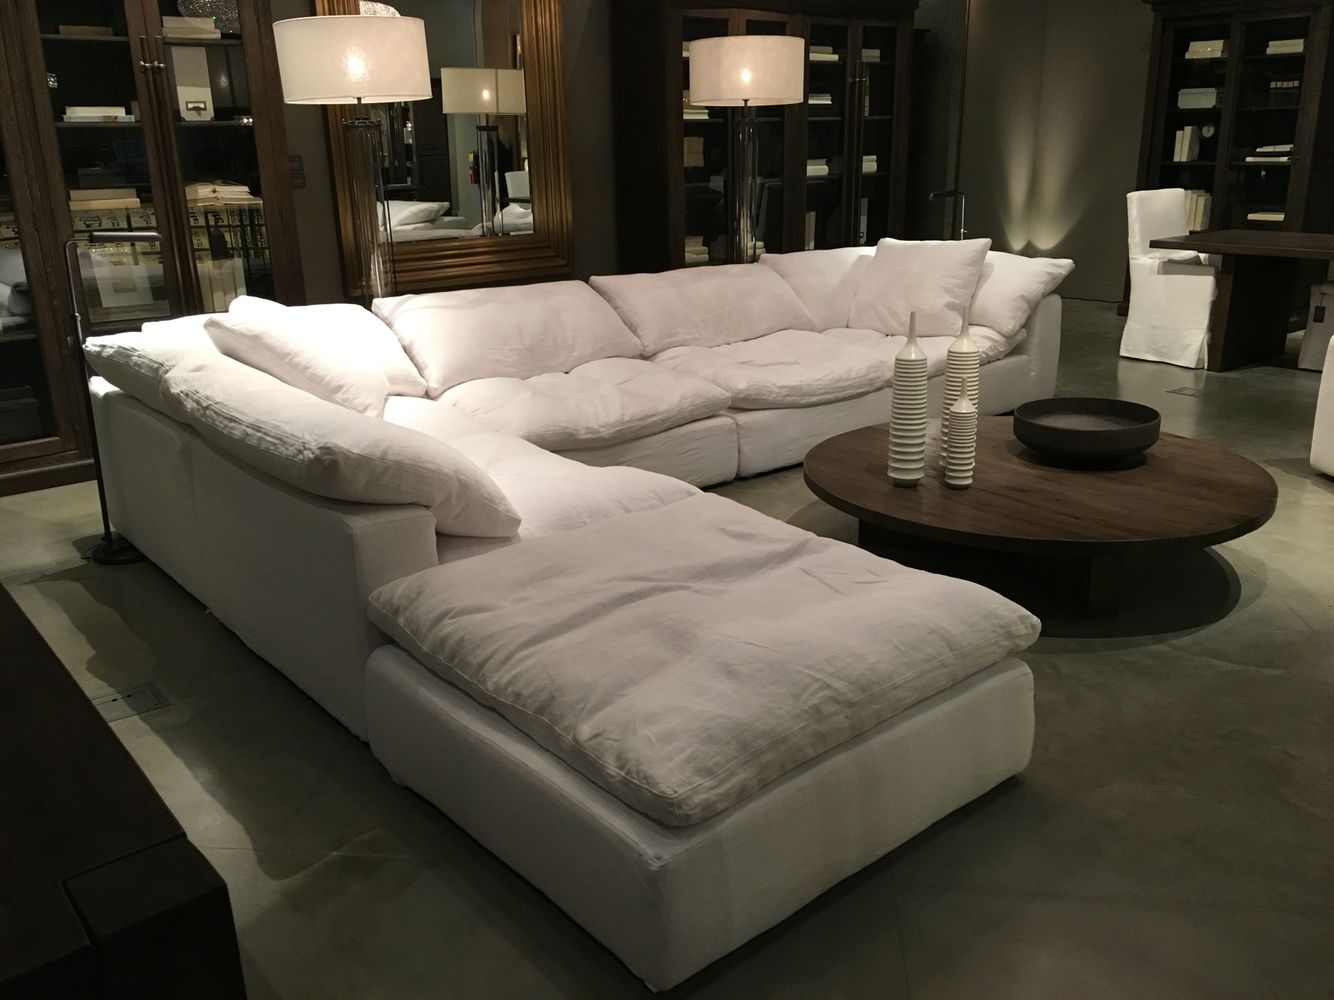 Restoration Hardware Sectional Sofa Sale Restoration Hardware Sectional Quotcloudquot Couch Future